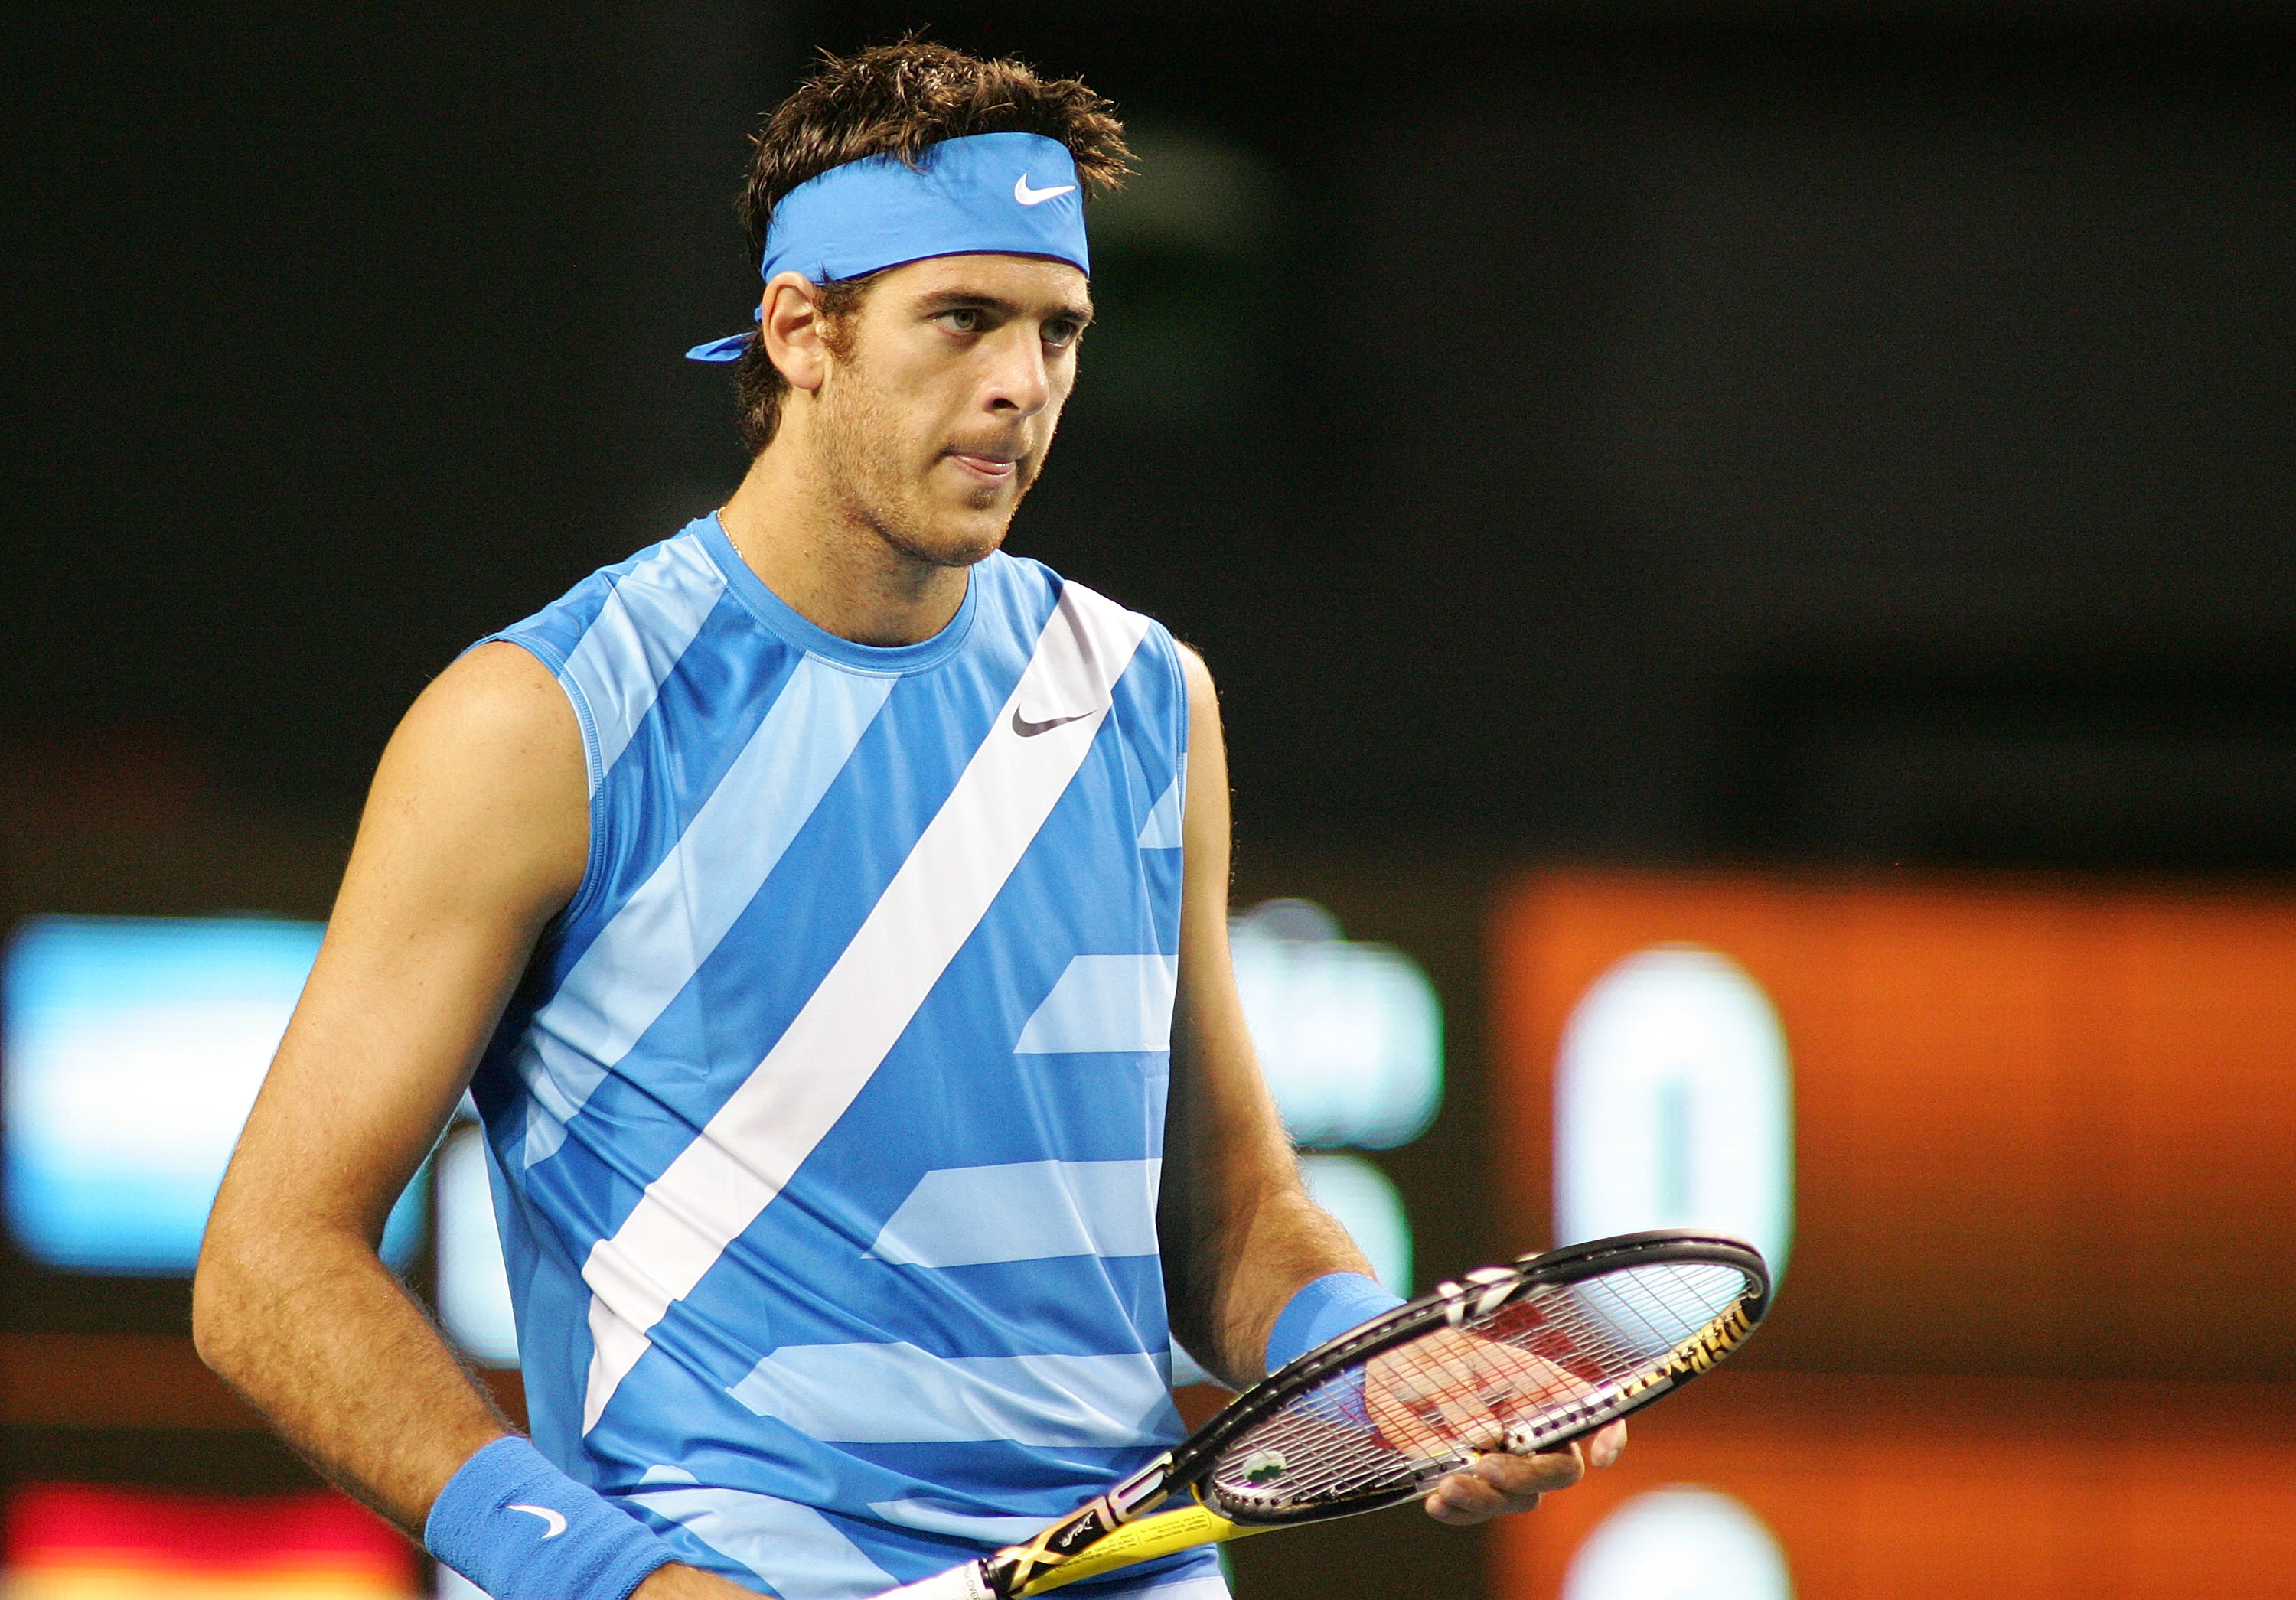 TOKYO - OCTOBER 04: Juan Martin Del Potro of Argentina during his match against Feliciano Lopez of Spain during on day one of the Rakuten Japan Open at Ariake Colosseum on October 4, 2010 in Tokyo, Japan. (Photo by Koji Watanabe/Getty Images)